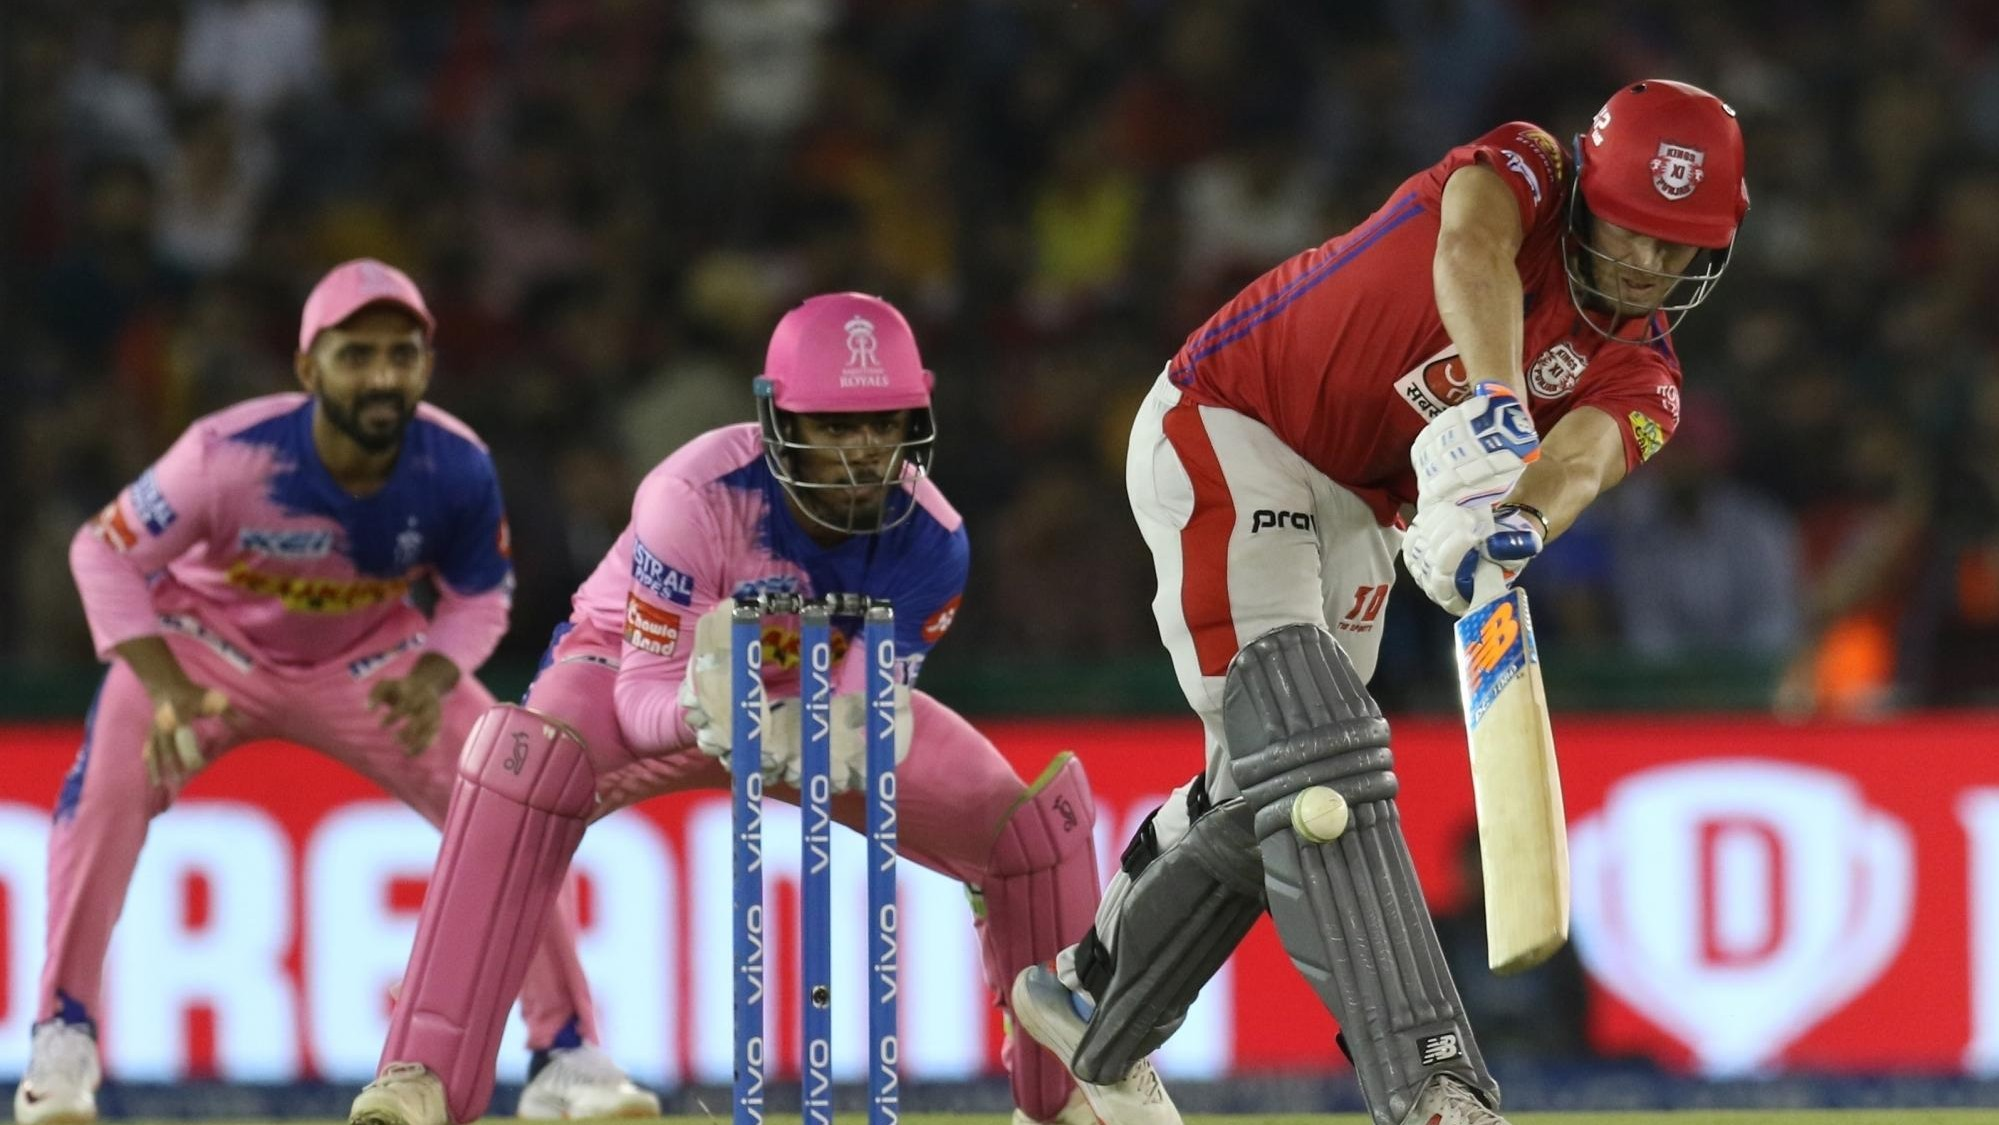 IPL 2020: Franchises to wait for fresh advisory on April 14 before planning to meet next